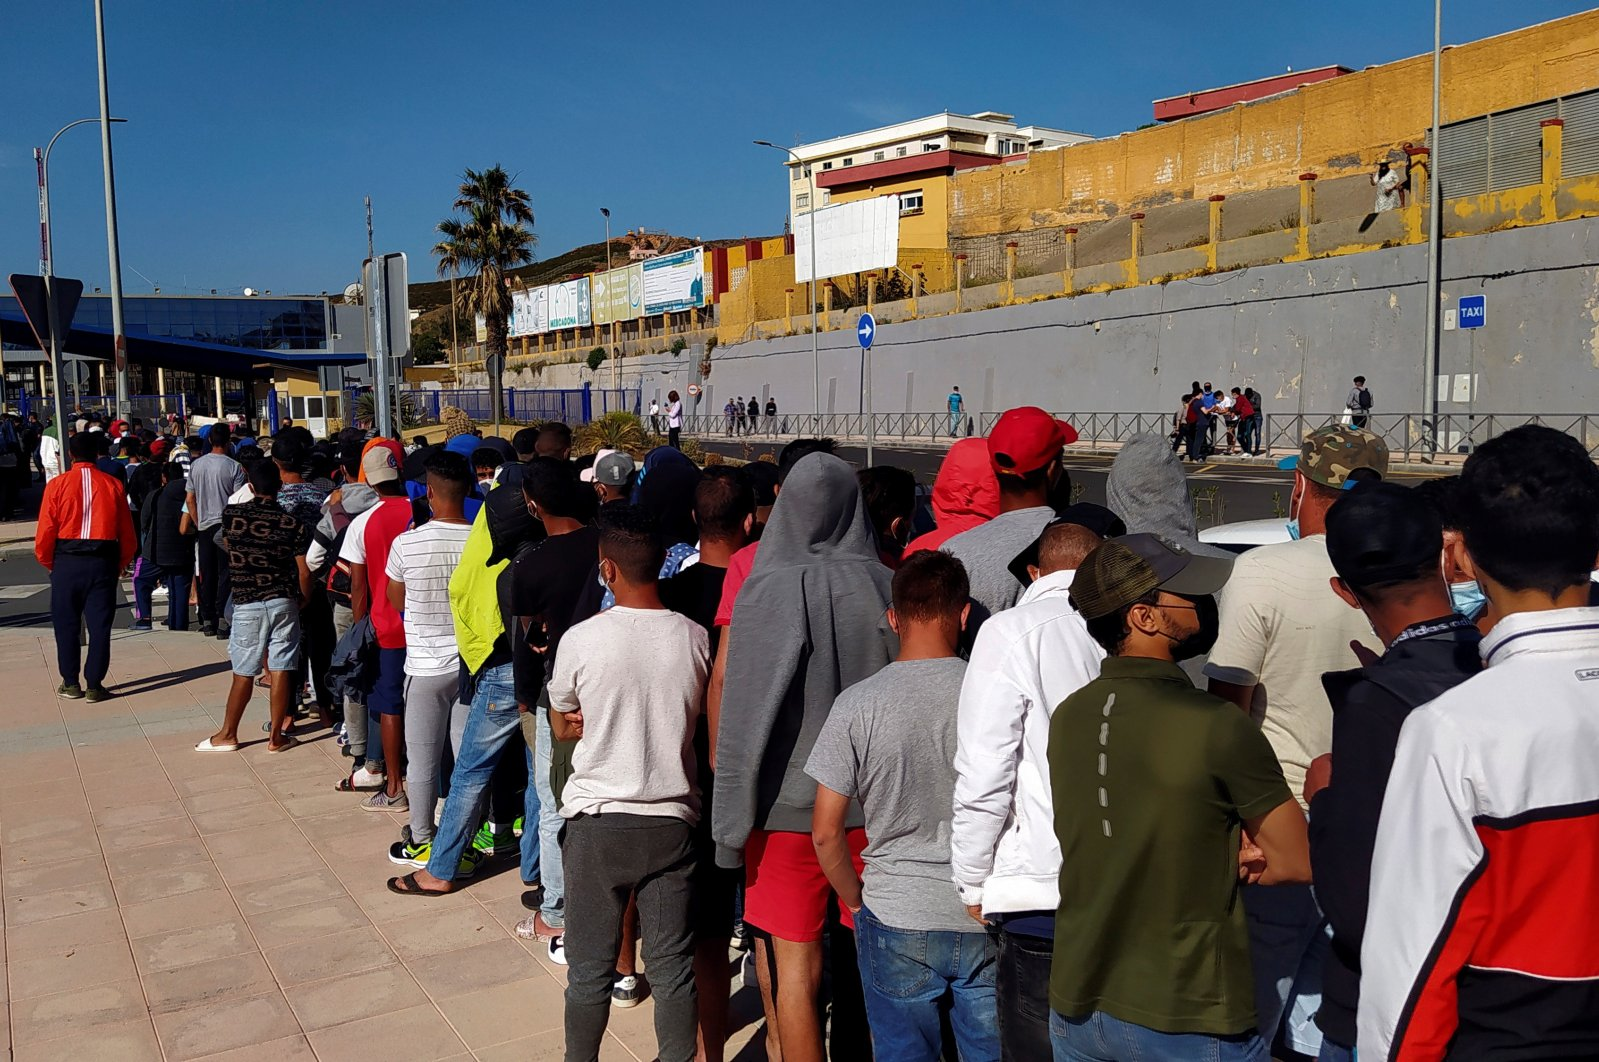 Moroccan migrants wait in a long line in front of Asylum and Refuge Office at Tarajal border crossing in Ceuta, Spanish enclave in northern Africa, June 2, 2021.  (EPA/Reduan Dris)